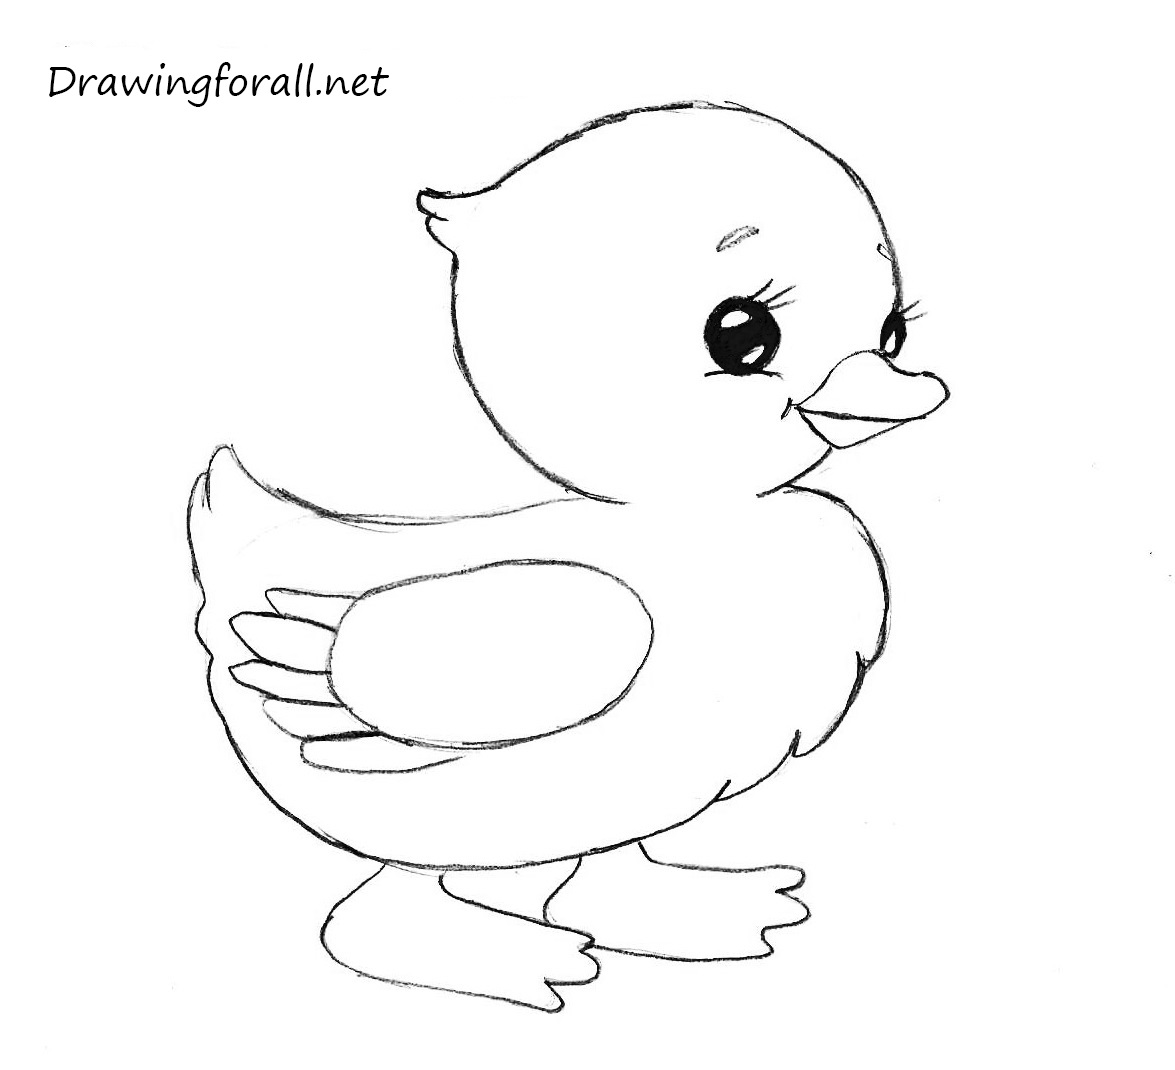 chicken drawings how to draw a chicken drawingforallnet chicken drawings